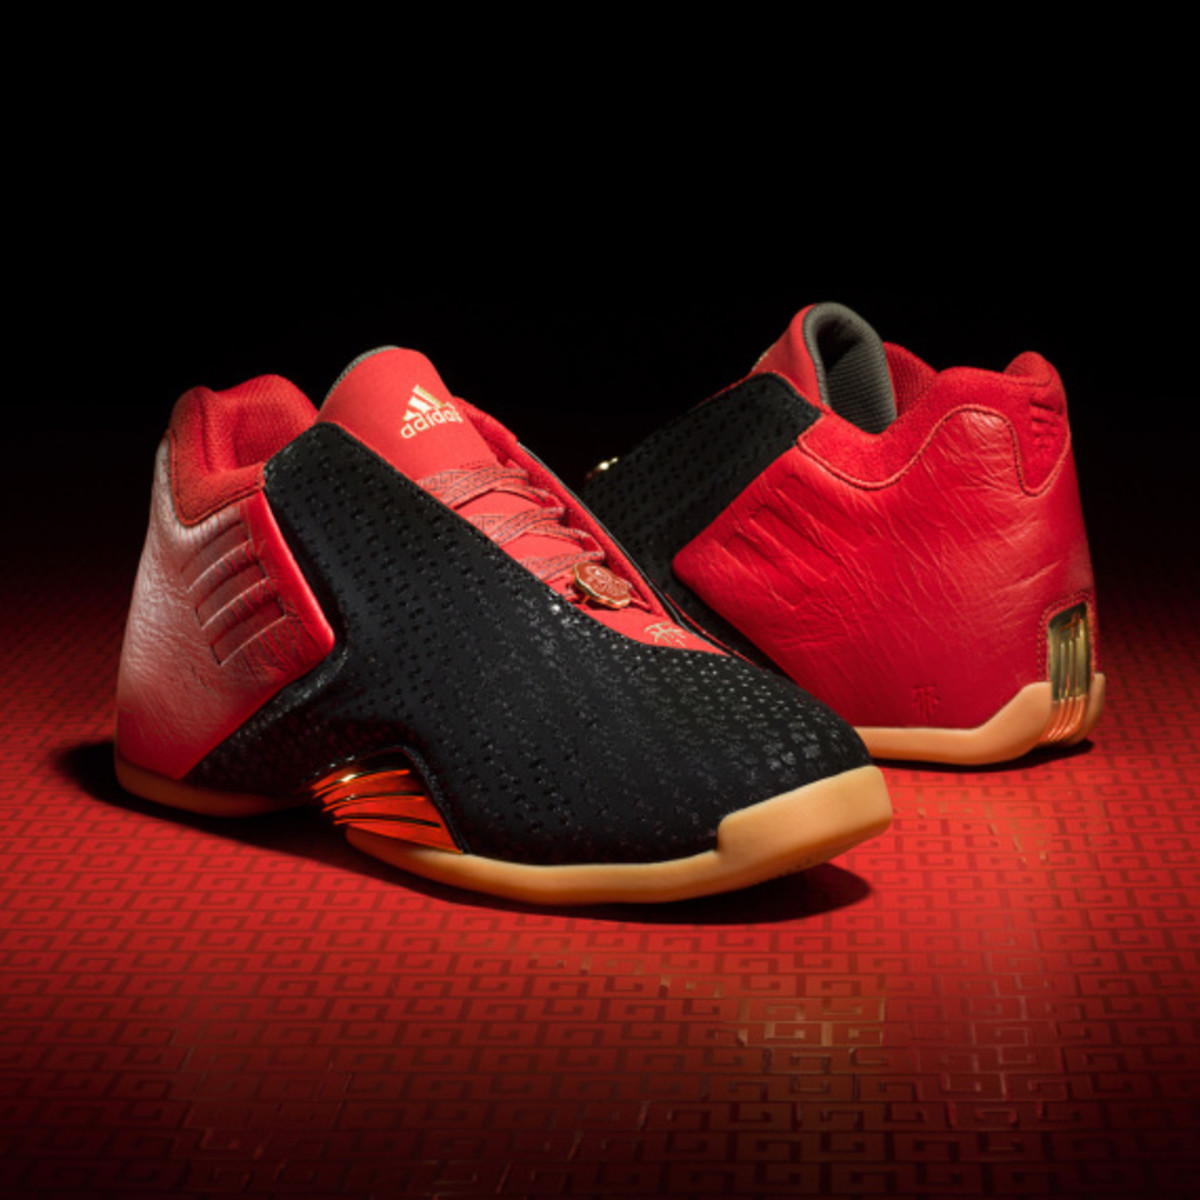 adidas-basketball-year-of-the-goat-collection-07